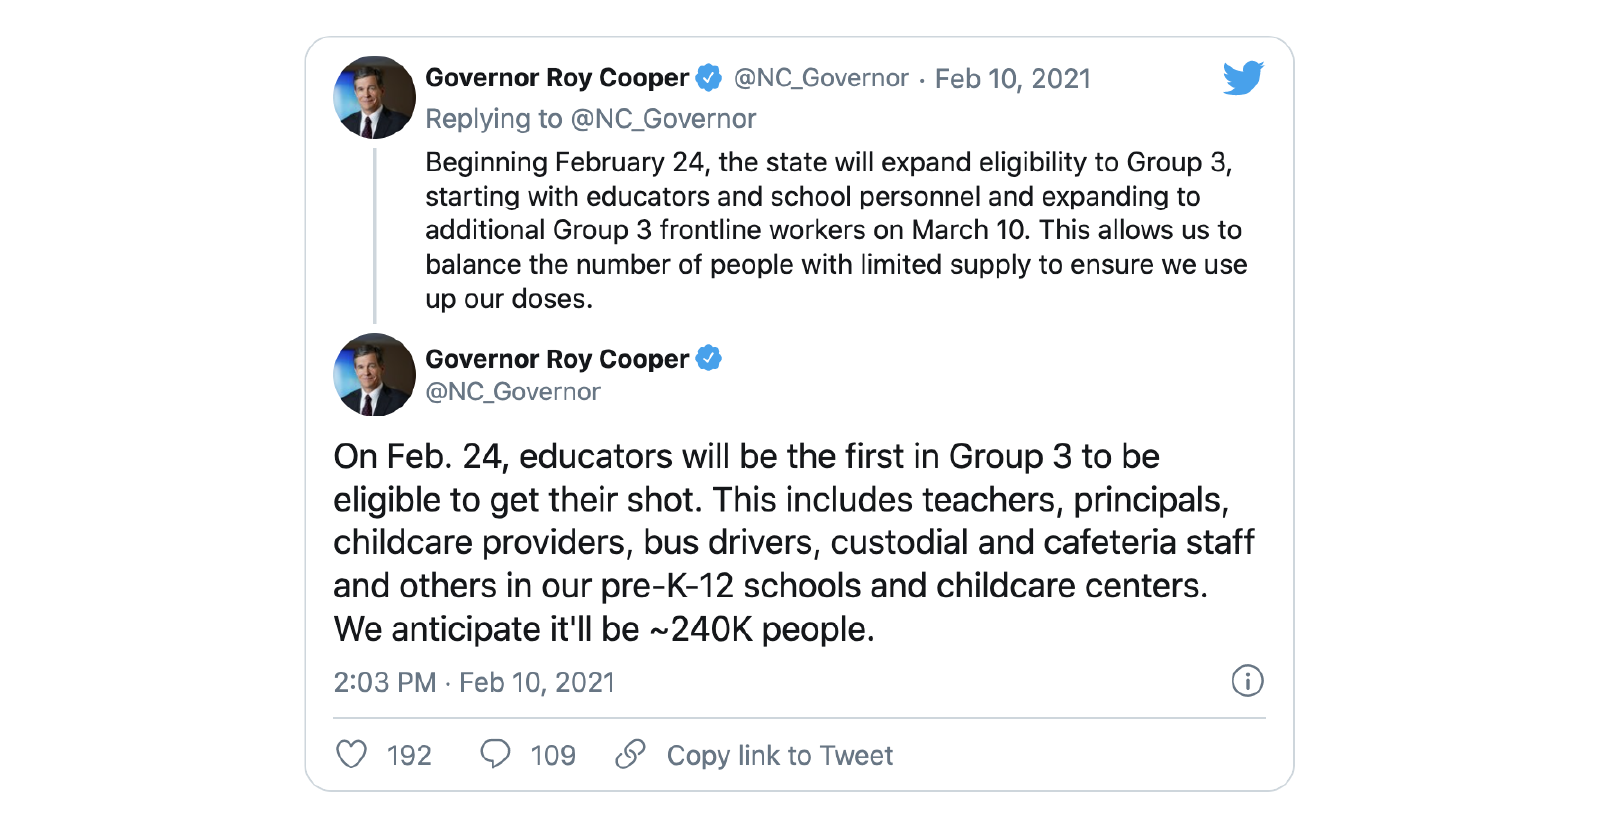 Dentists given authority to administer COVID-19 vaccine, per Gov. Cooper executive order